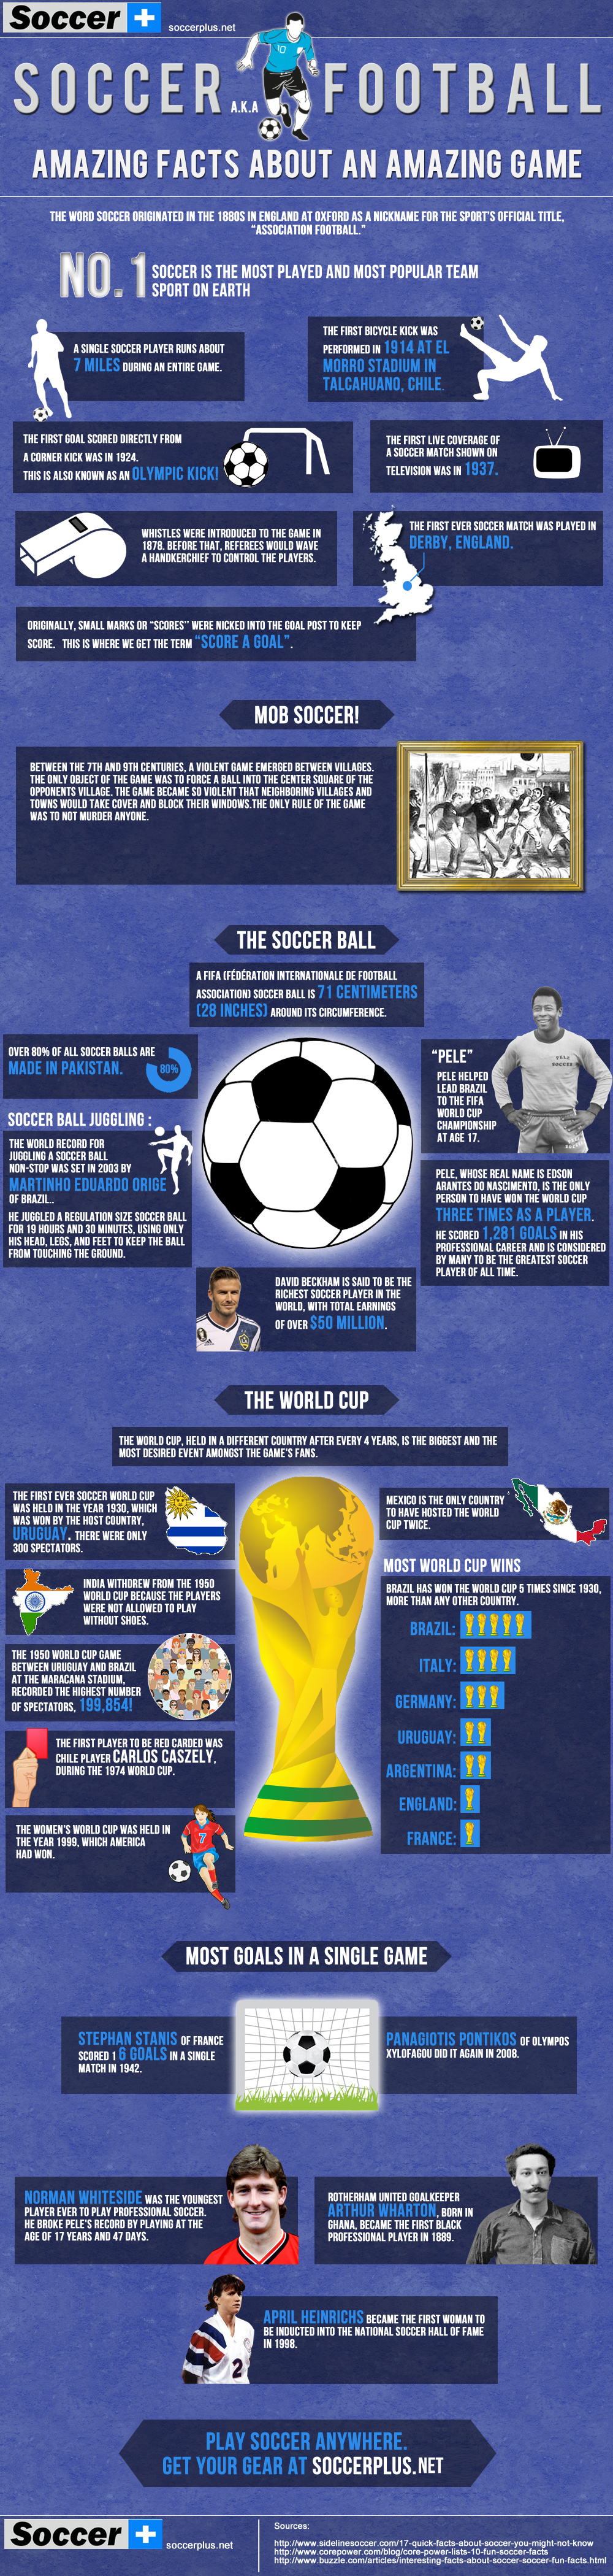 History of Soccer Through Amazing Facts